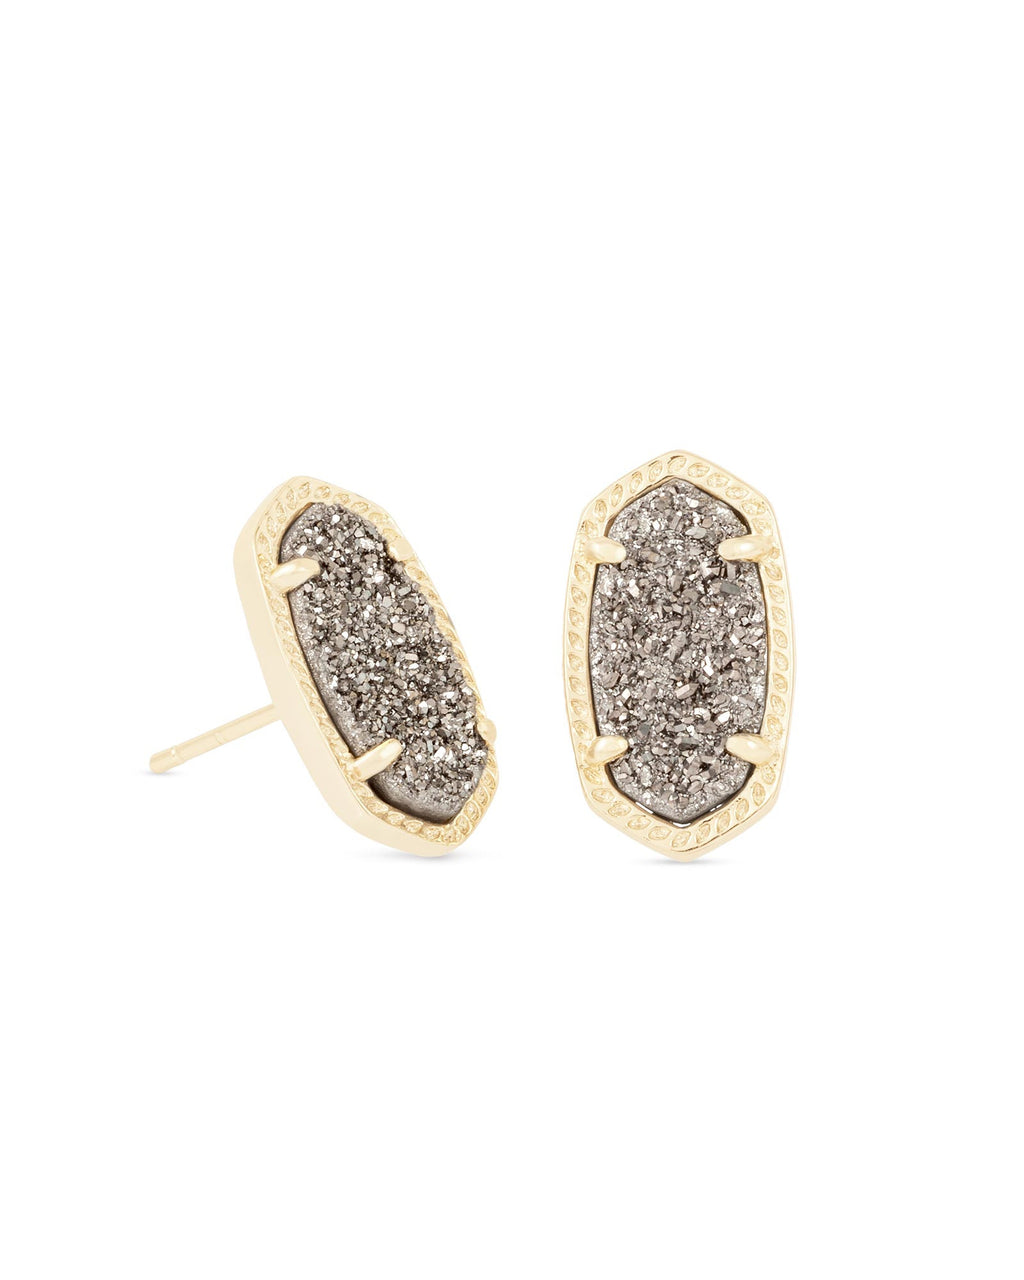 KENDRA SCOTT Ellie Gold Stud Earrings In Platinum Drusy